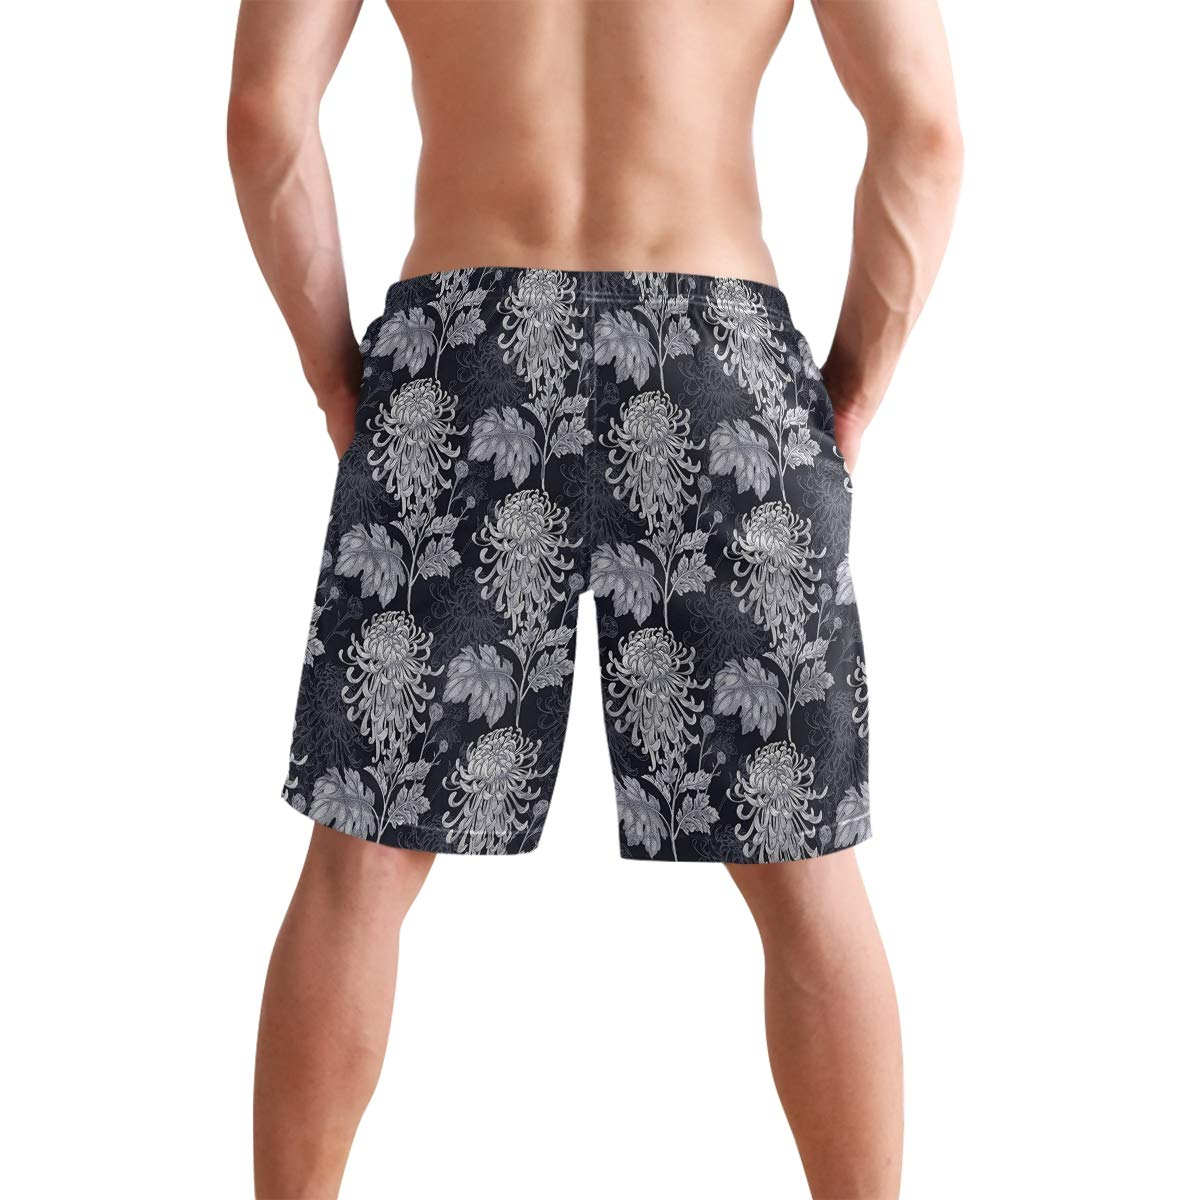 COVASA Mens Summer ShortsChristmaswooden Setting with Silver Balls Fairy Tale